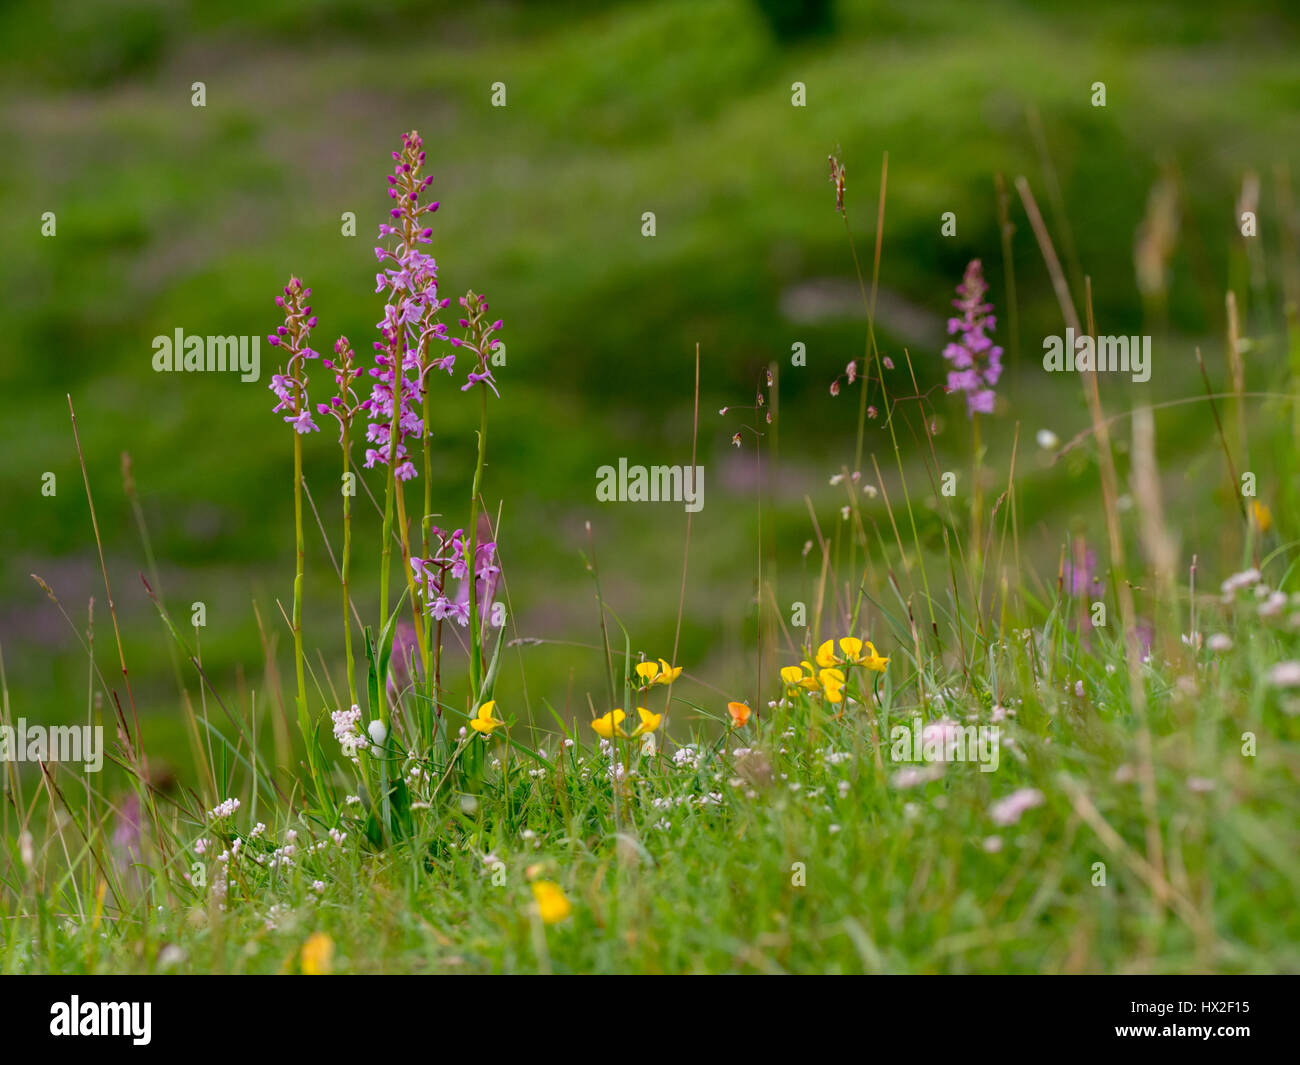 Fragrant Orchids, sqinancywort, Bird's-foot trefoil, quaking grass at Aston Clinton Ragpits nature reserve. - Stock Image